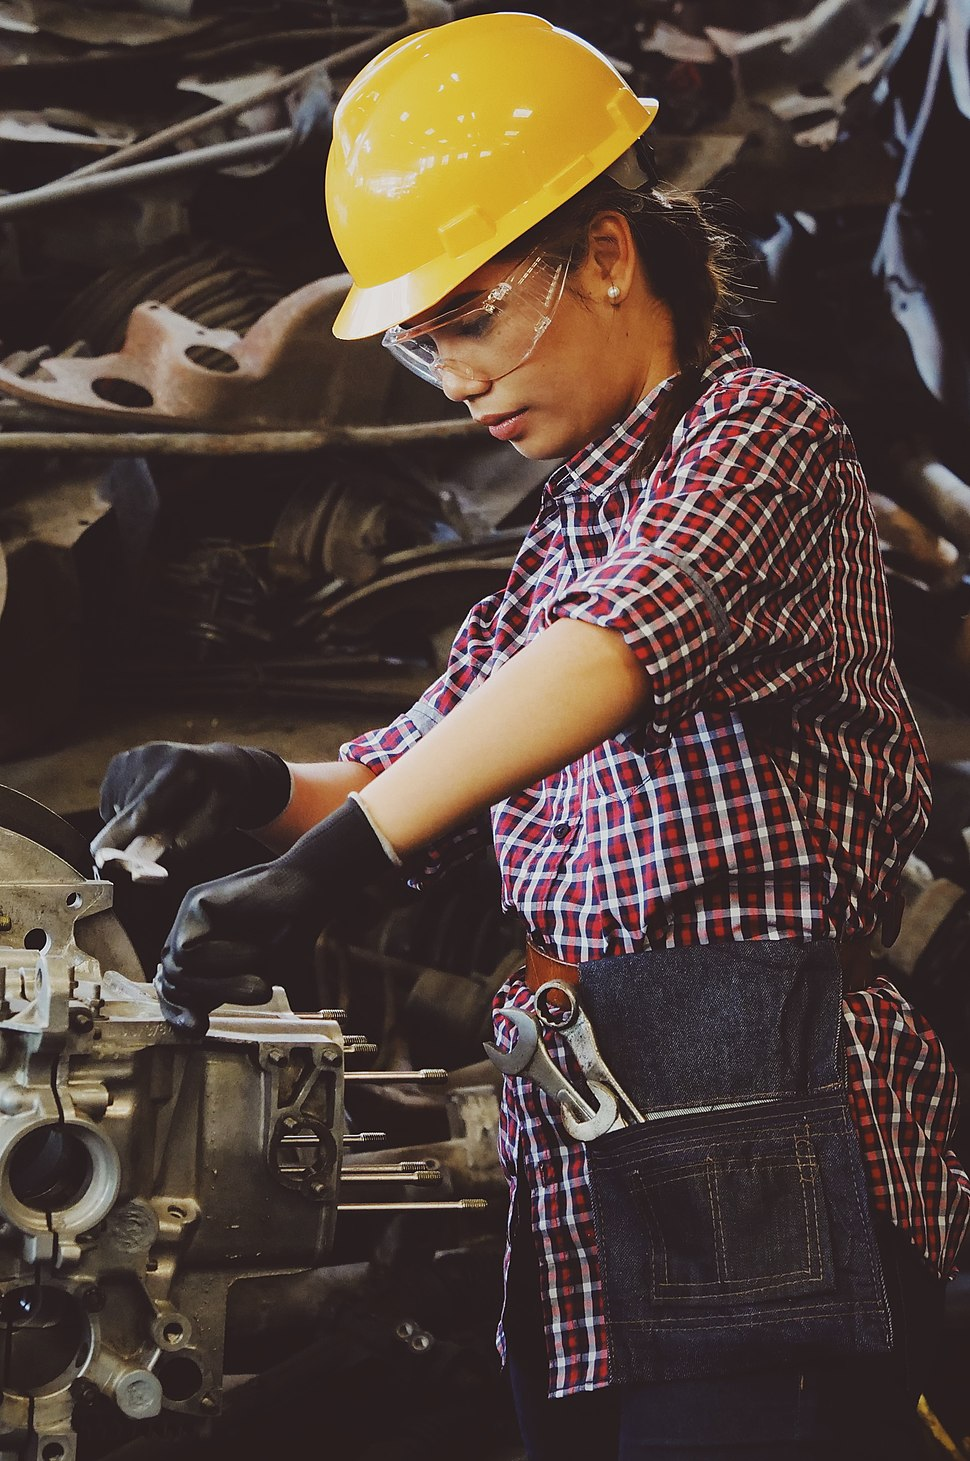 Woman mechanic working on engine (cropped).jpeg